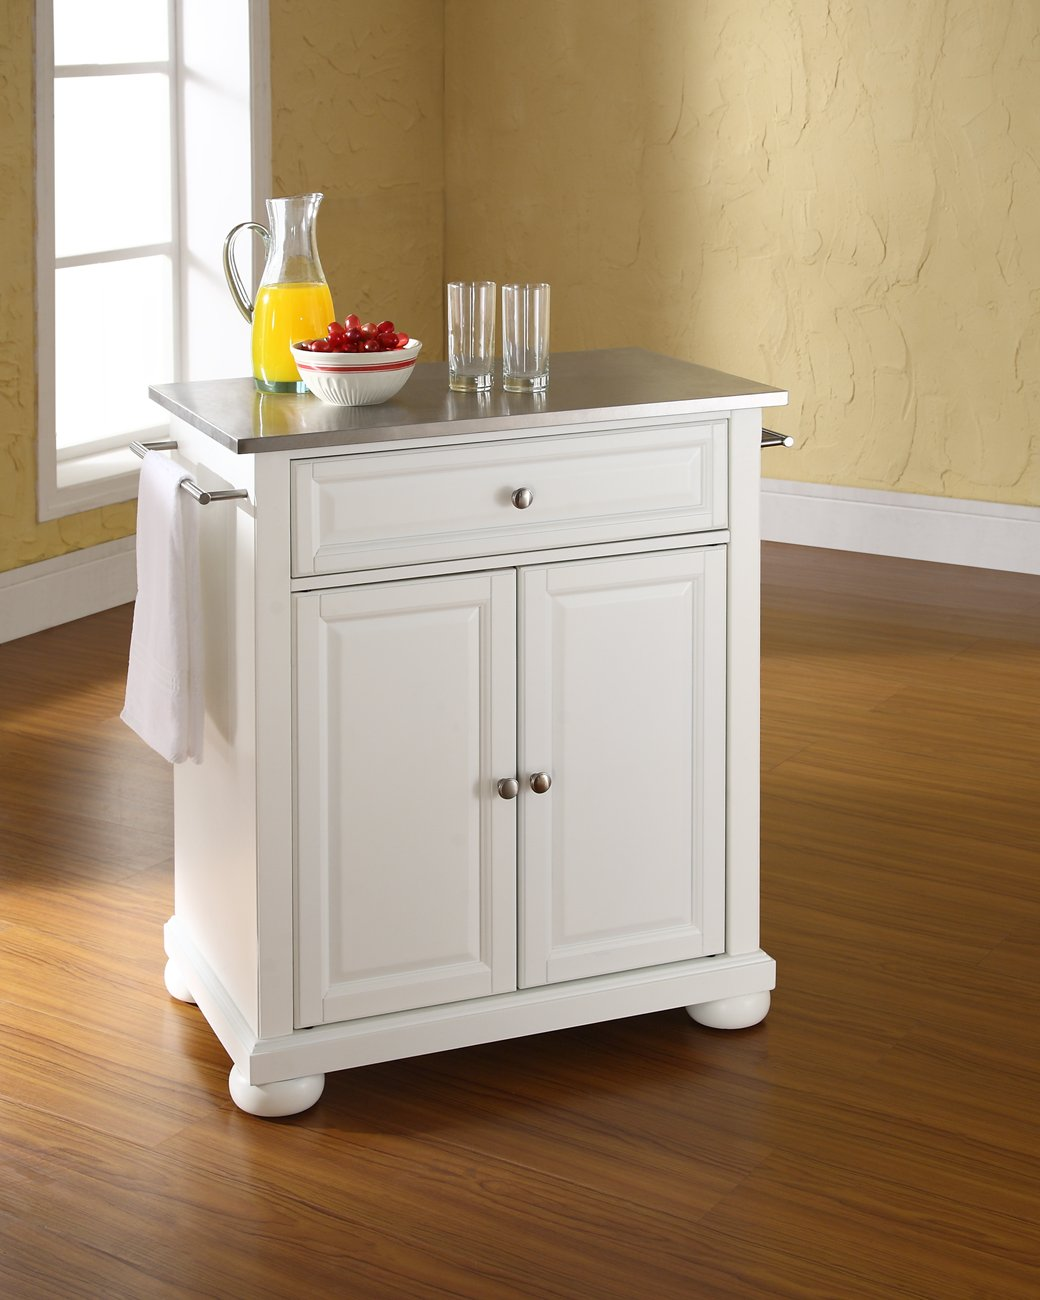 Crosley Furniture Alexandria Cuisine Kitchen Island with Stainless Steel Top – White